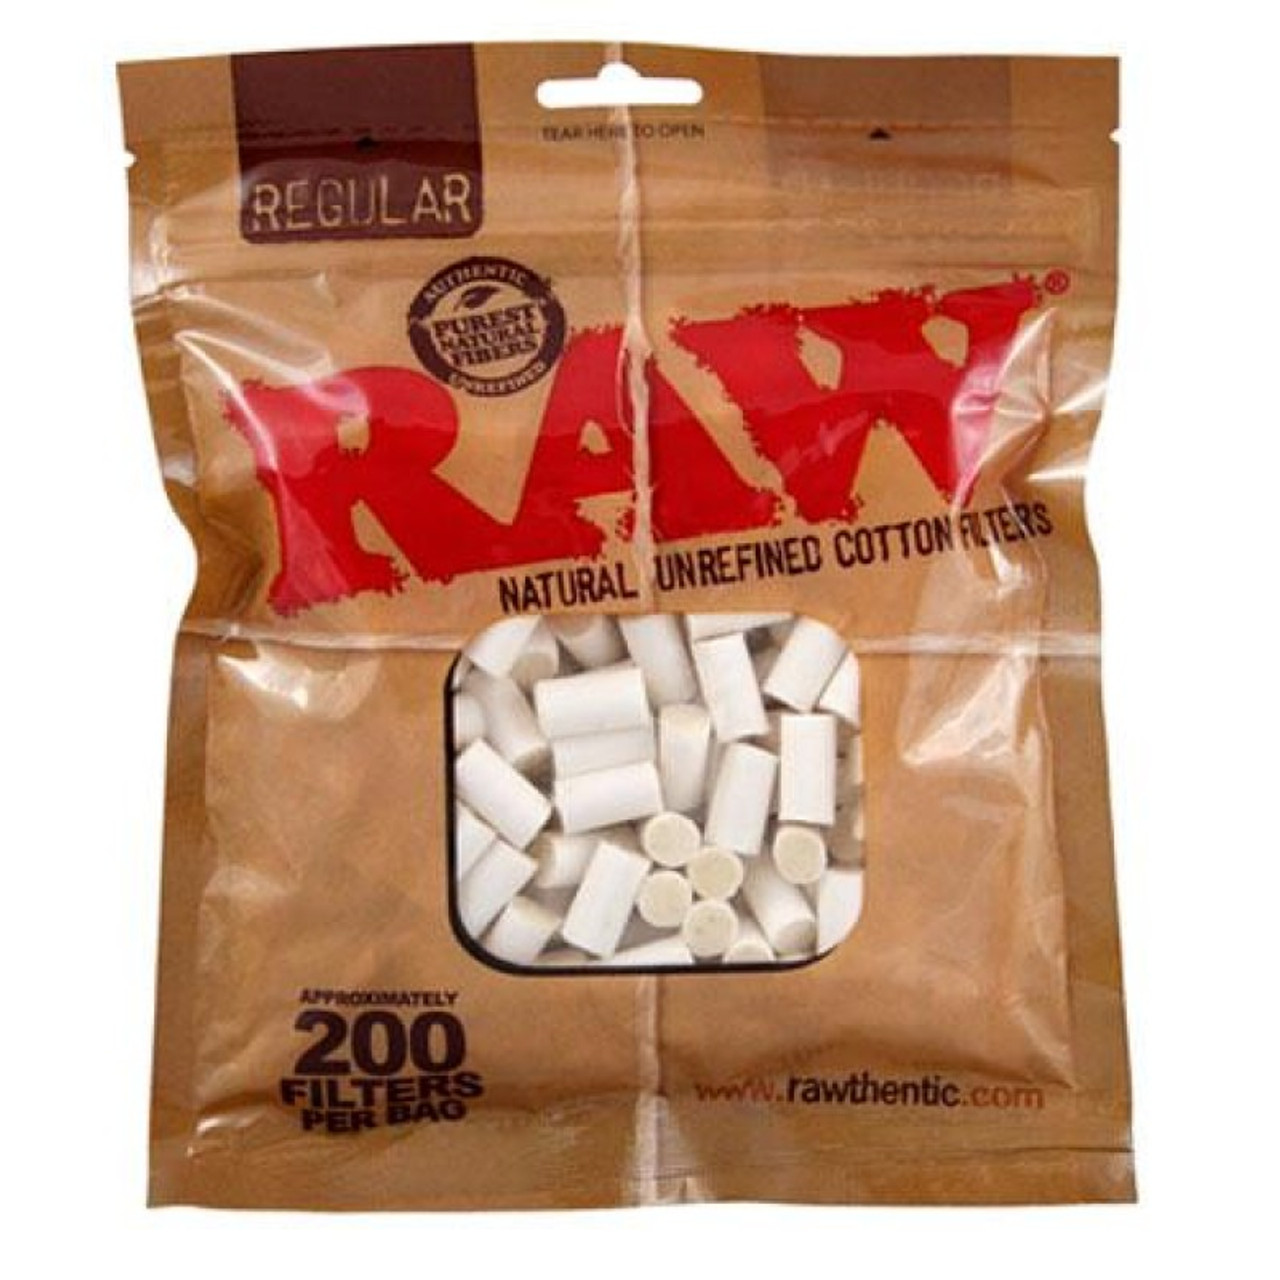 RAW Cigarette Filter Tips